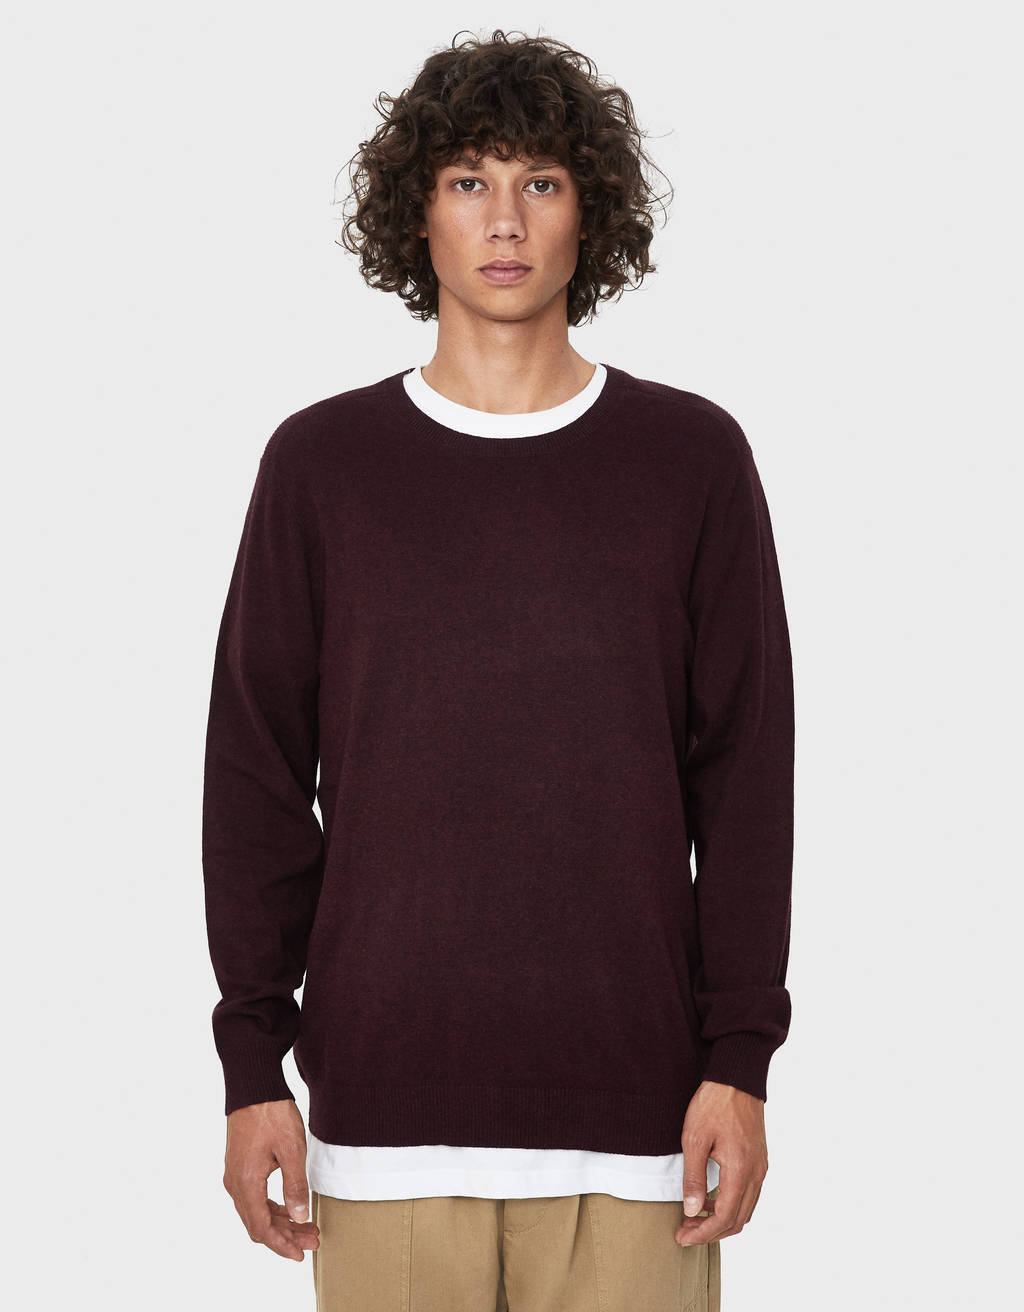 Sweater com decote redondo